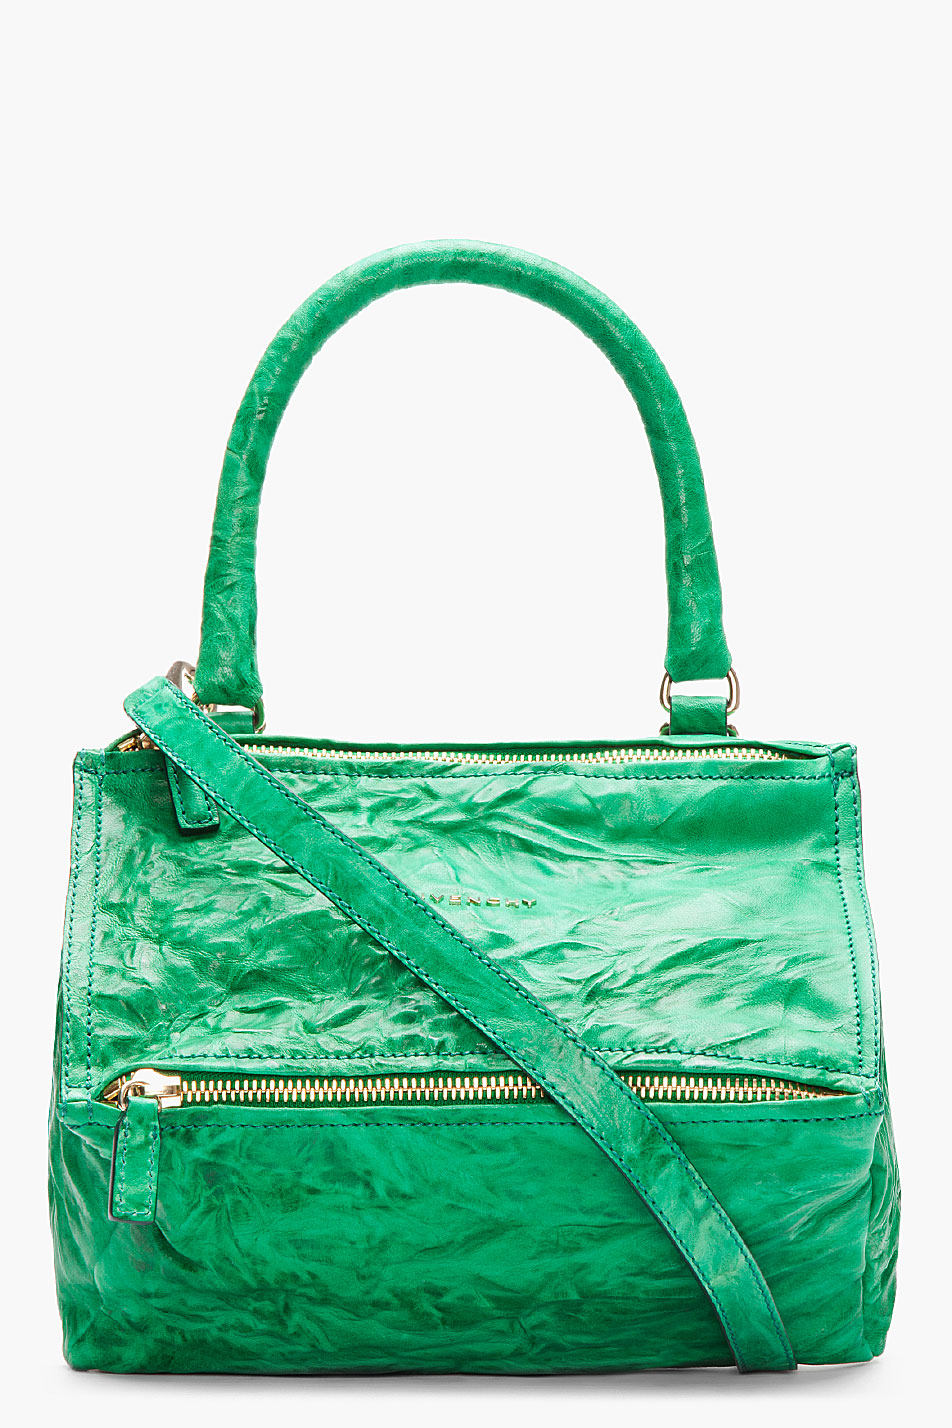 Givenchy Emerald Green Crinkled Leather Medium Pepe Pandora in ...